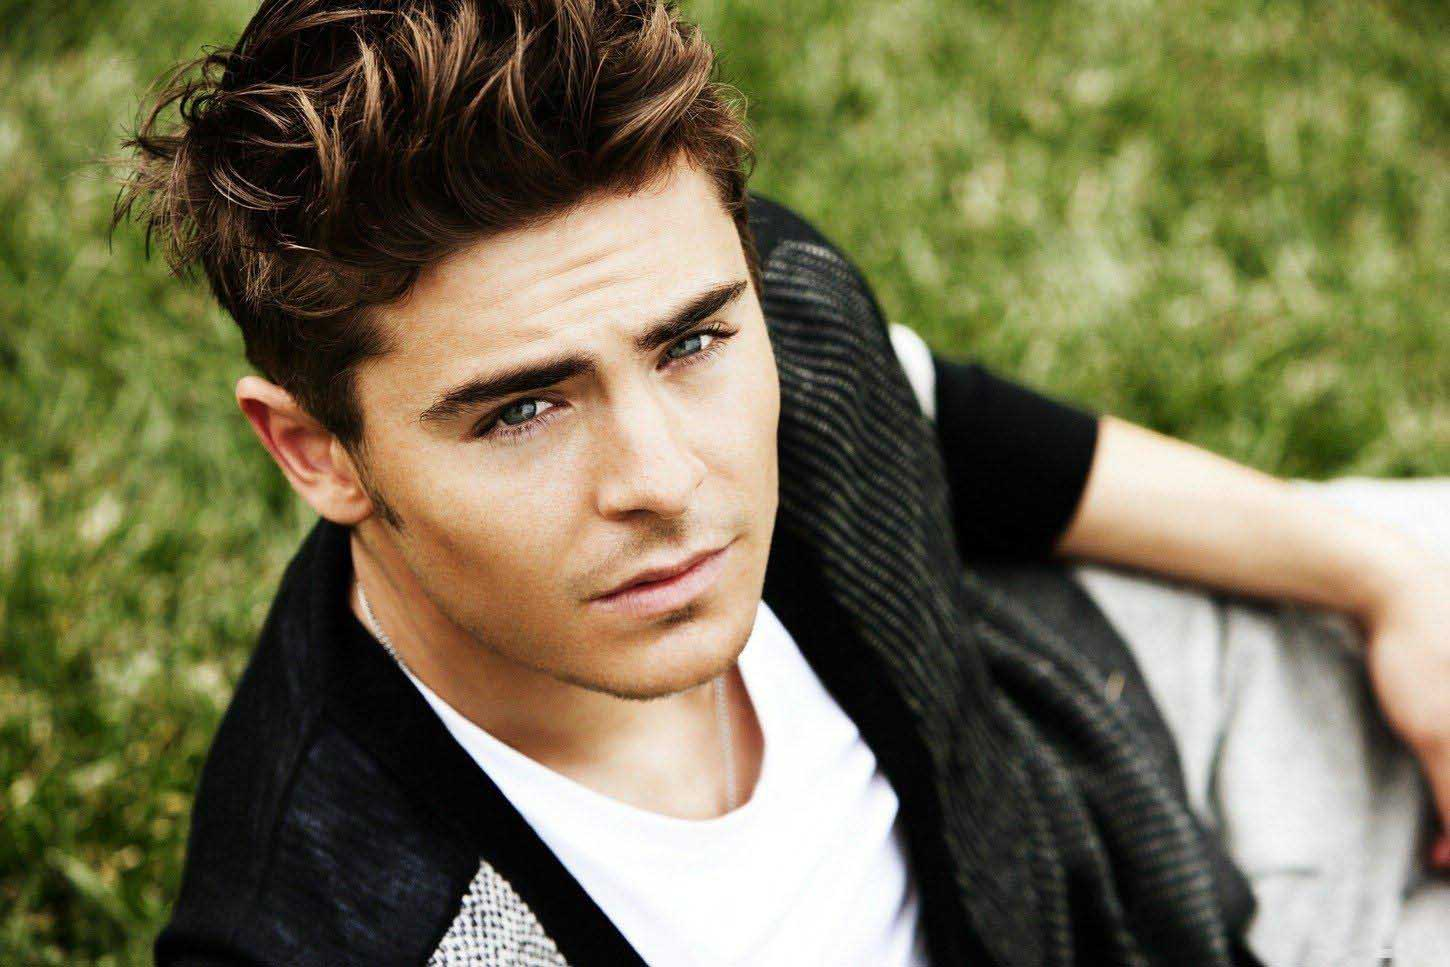 Zac Efron Net Worth: The Much Talked About Hollywood Actor This Week